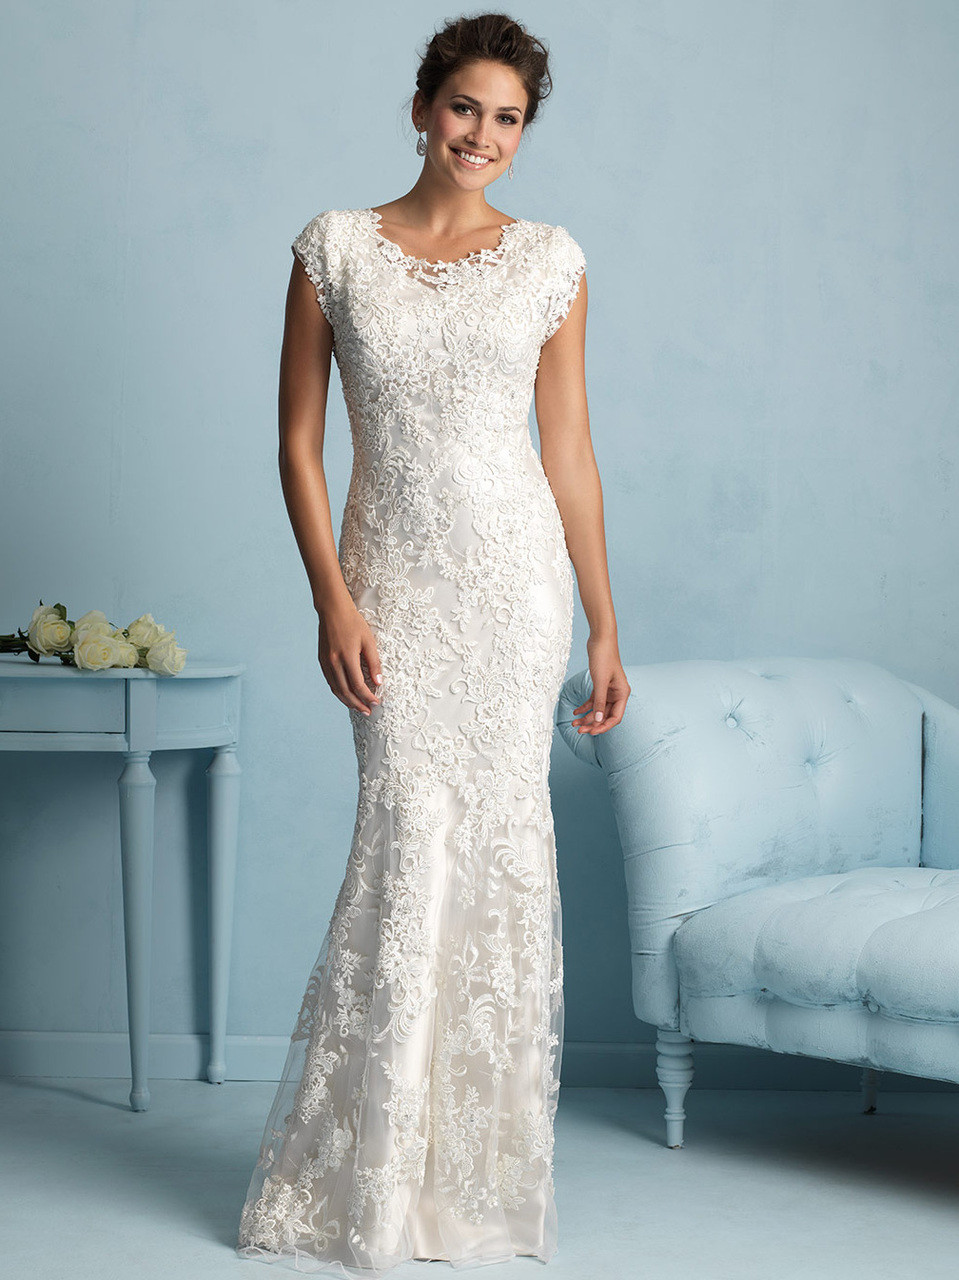 Wedding Sheath dresses vera wang